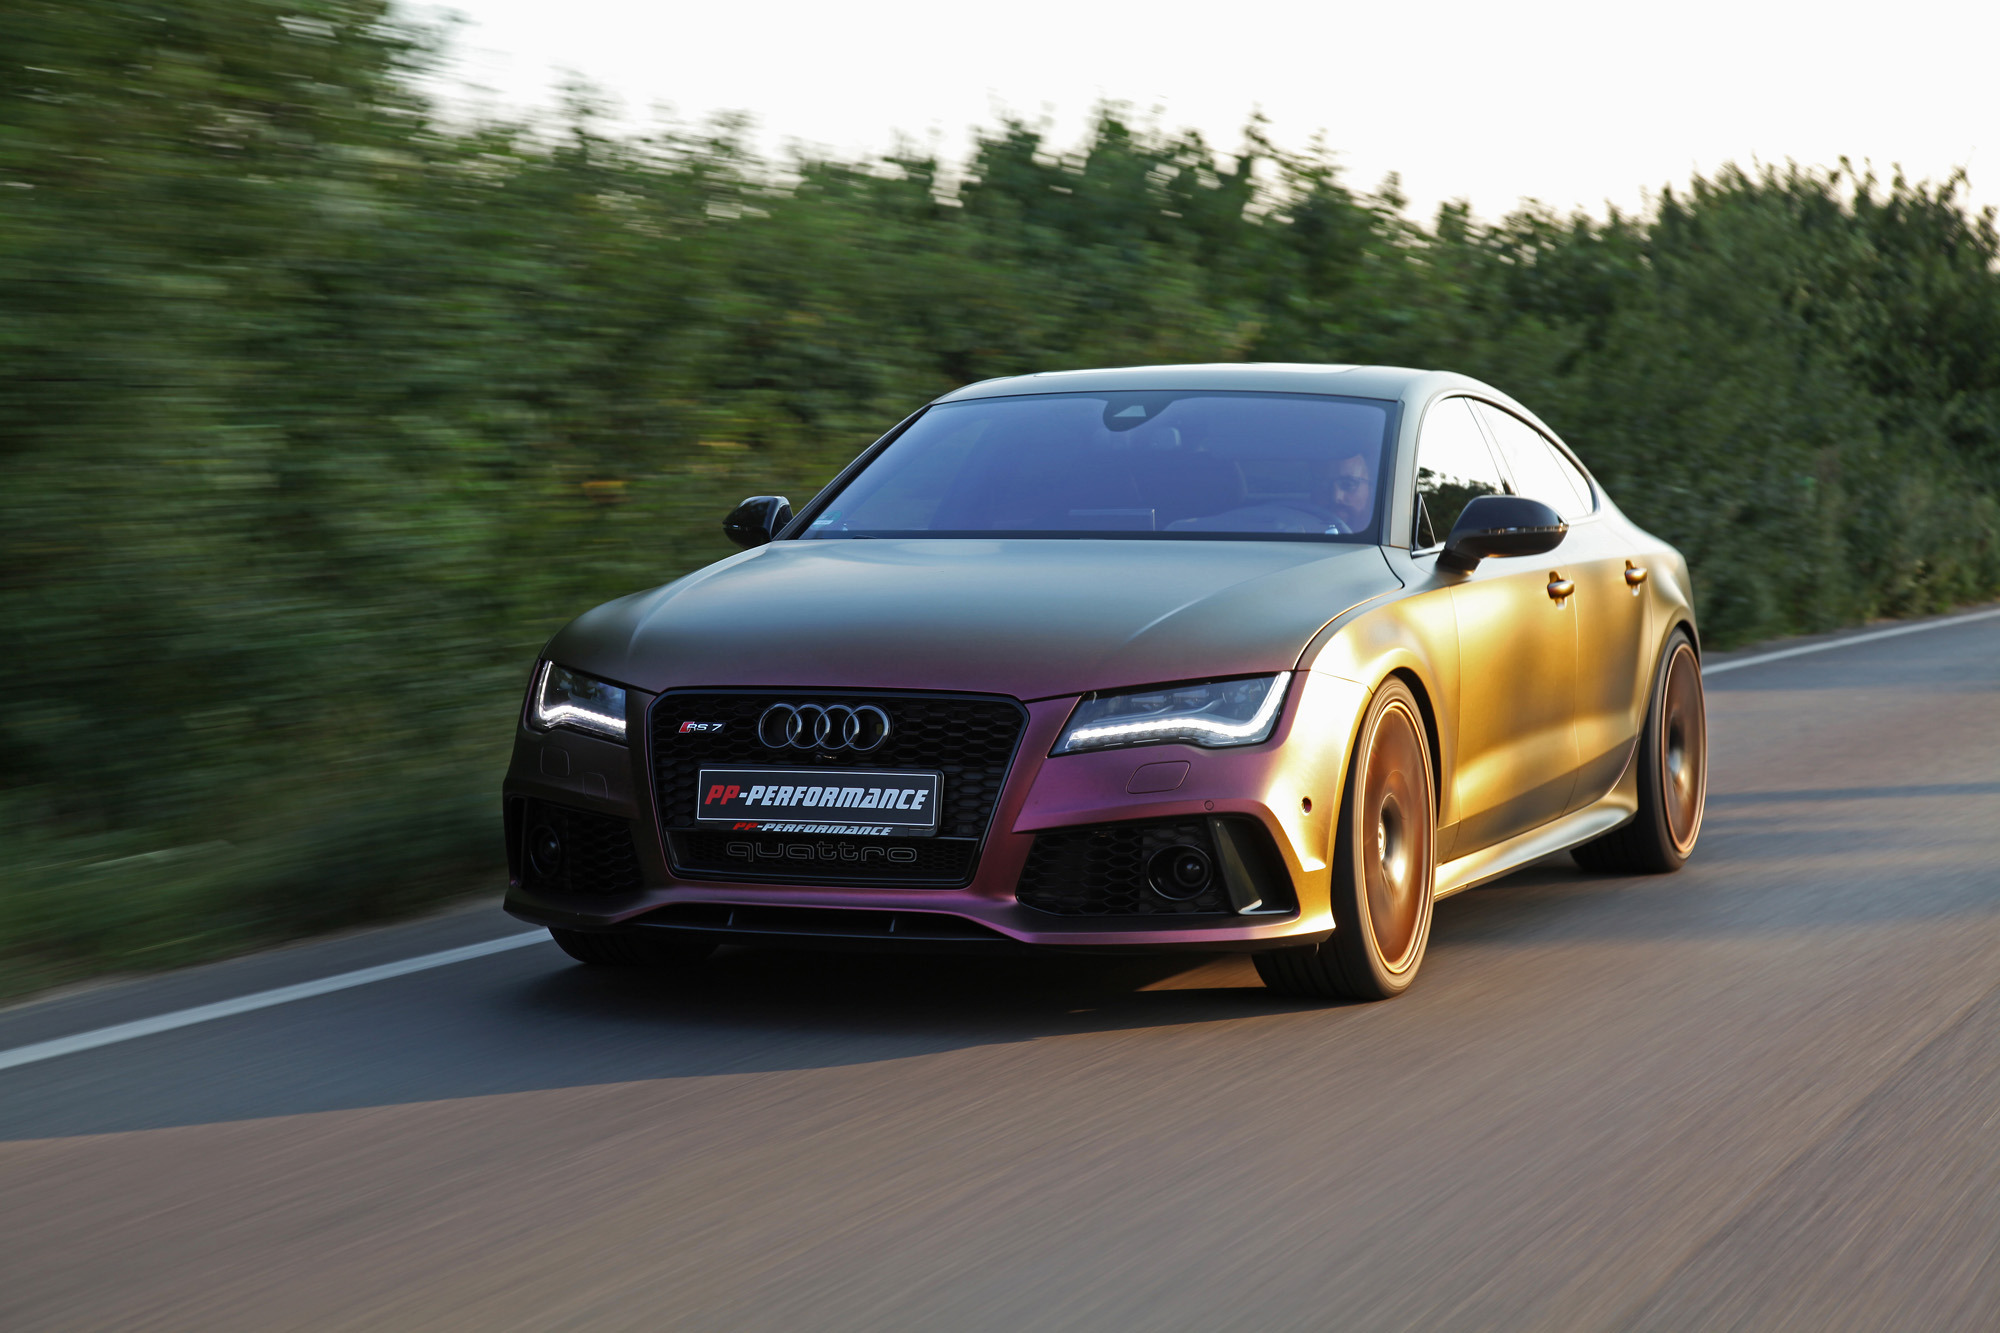 audi-rs-7-sportback-pp-performance-24